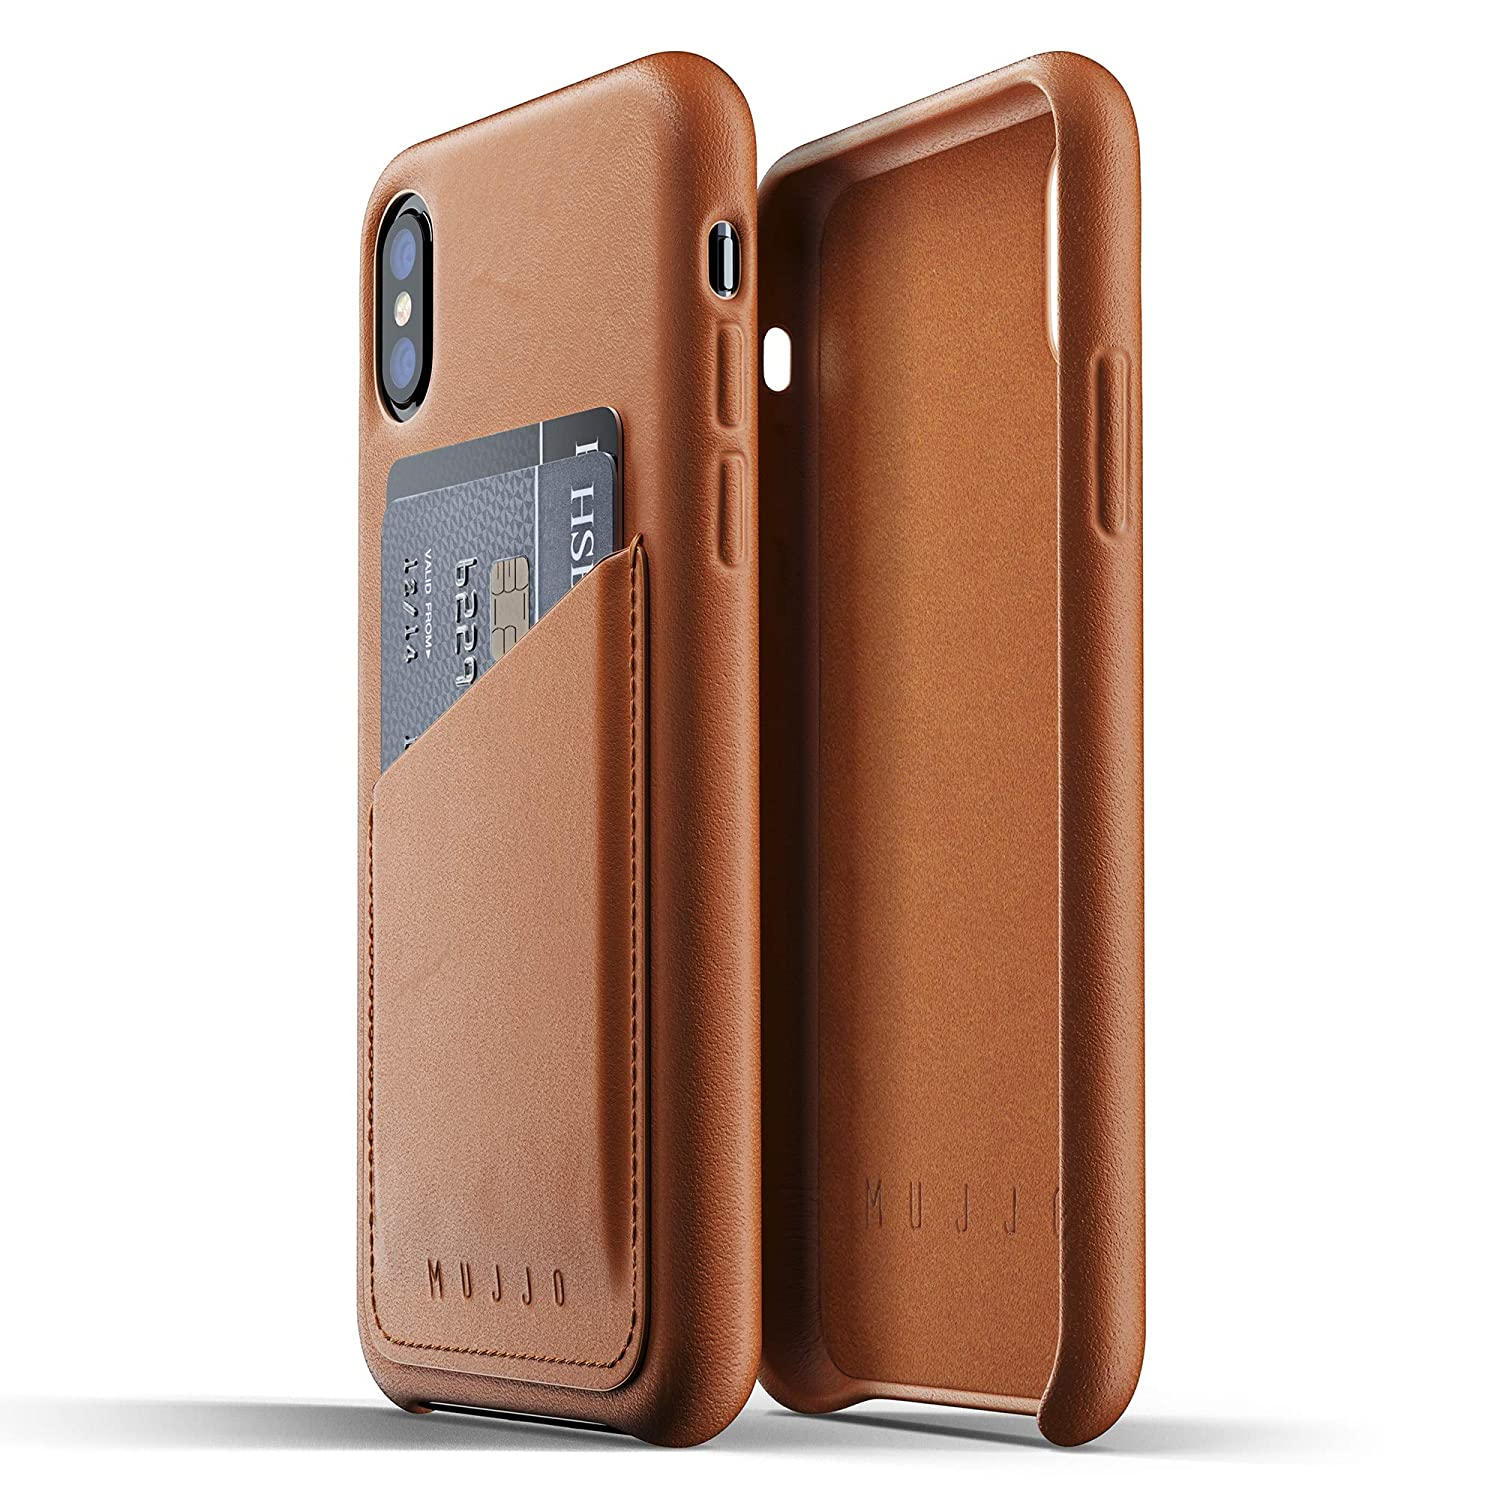 sports shoes 0b17e 9ec26 Mujjo Full Leather Wallet Case compatible with iPhone XS, iPhone X | 2-3  Card Pocket, 1MM Protective Screen Bezel, Japanese Suede Lining (Tan)